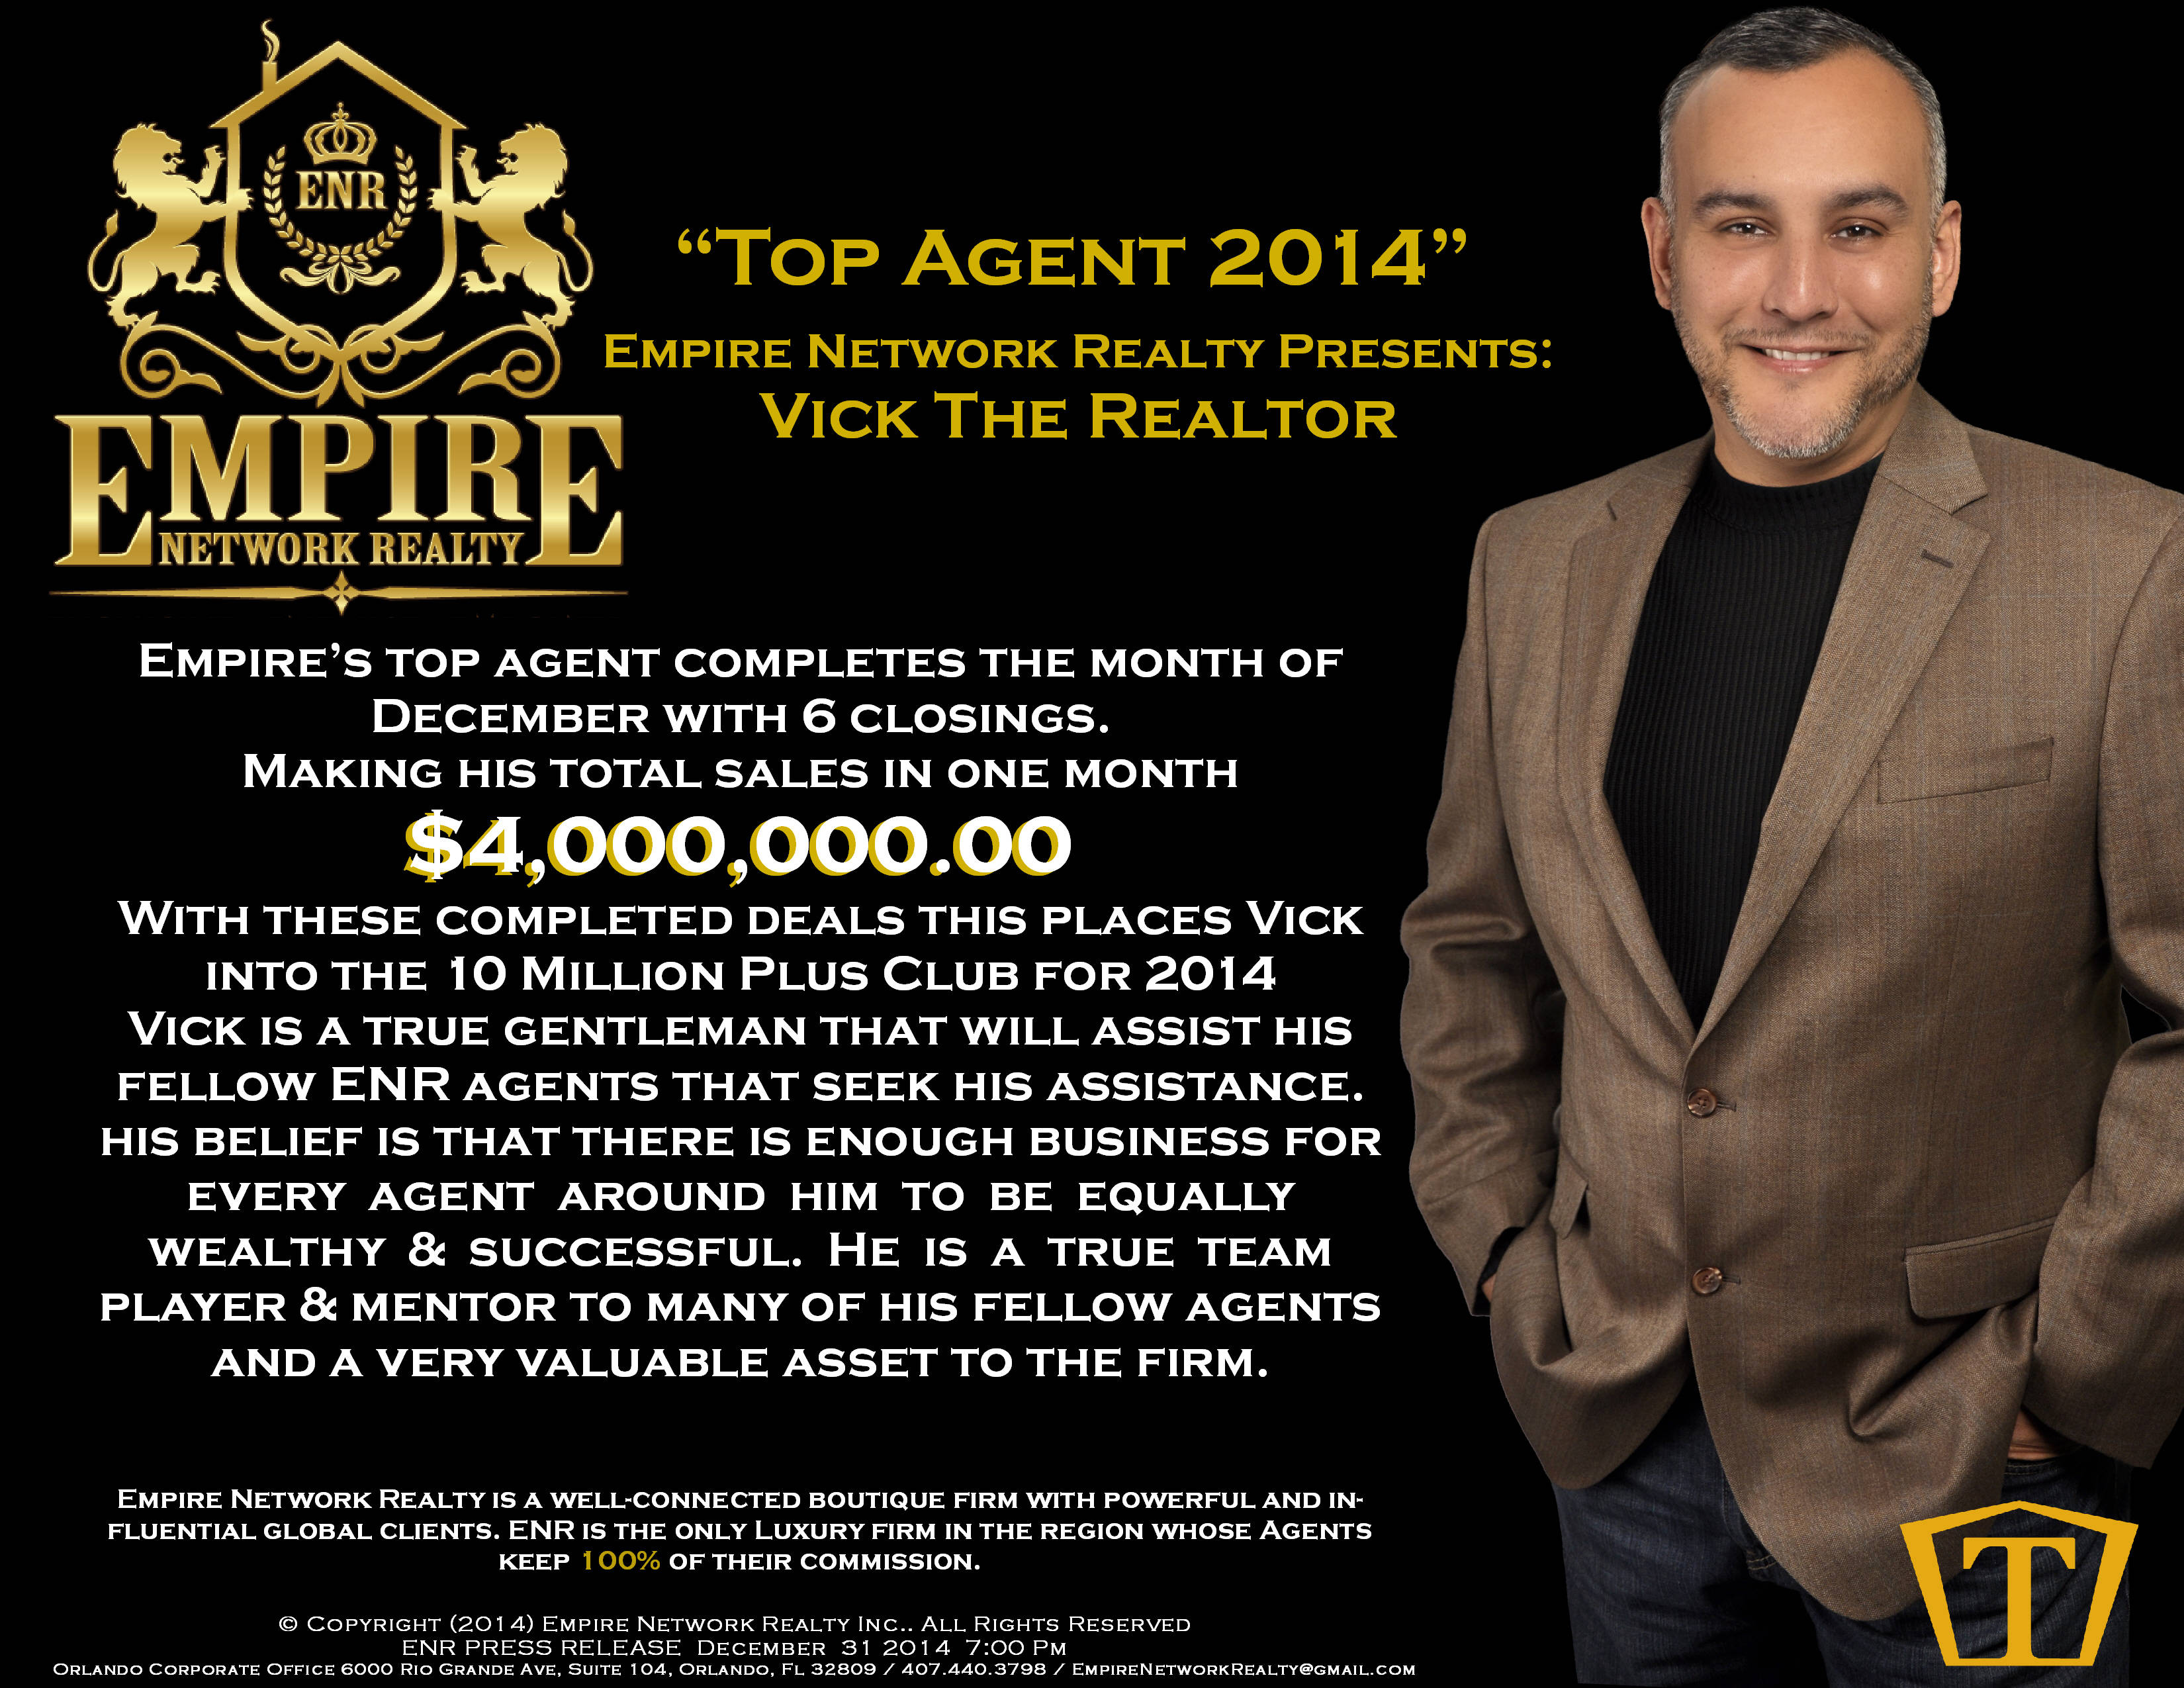 empire network realty top agent 2014. Black Bedroom Furniture Sets. Home Design Ideas